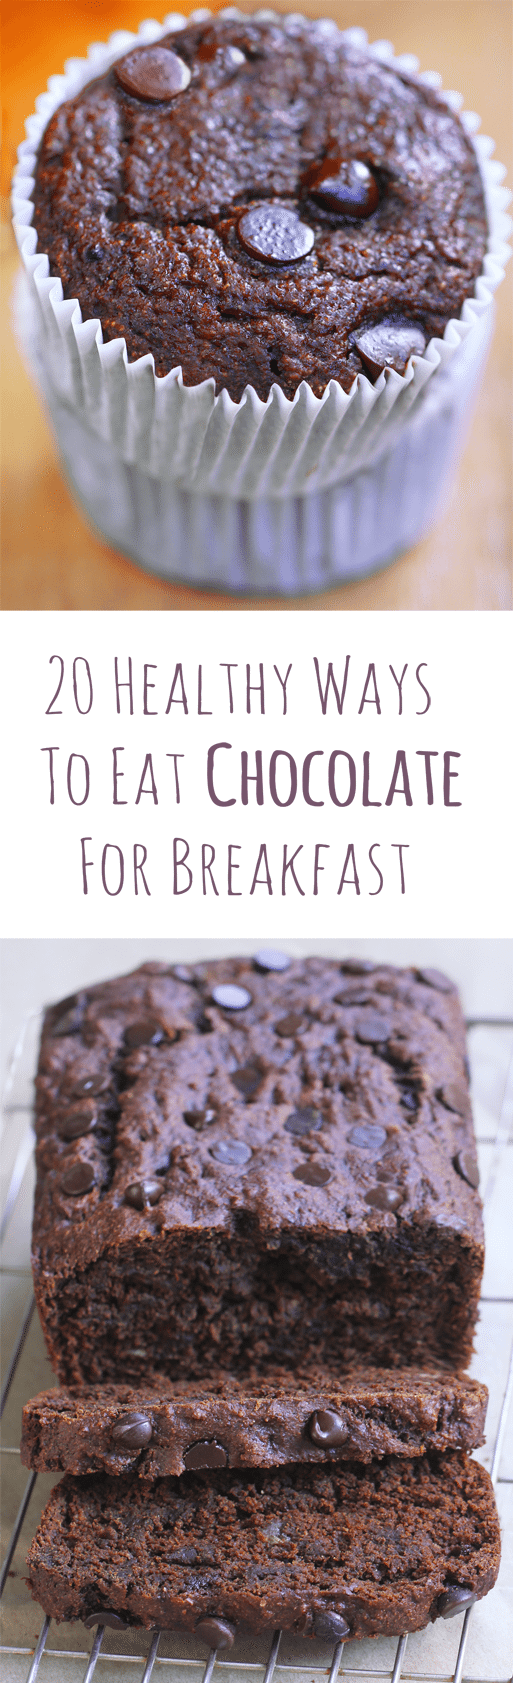 For those days when you want to be healthy, but you're really craving chocolate for breakfast! Full recipes: https://chocolatecoveredkatie.com/2016/08/25/chocolate-breakfast-recipes-healthy/ @choccoveredkt